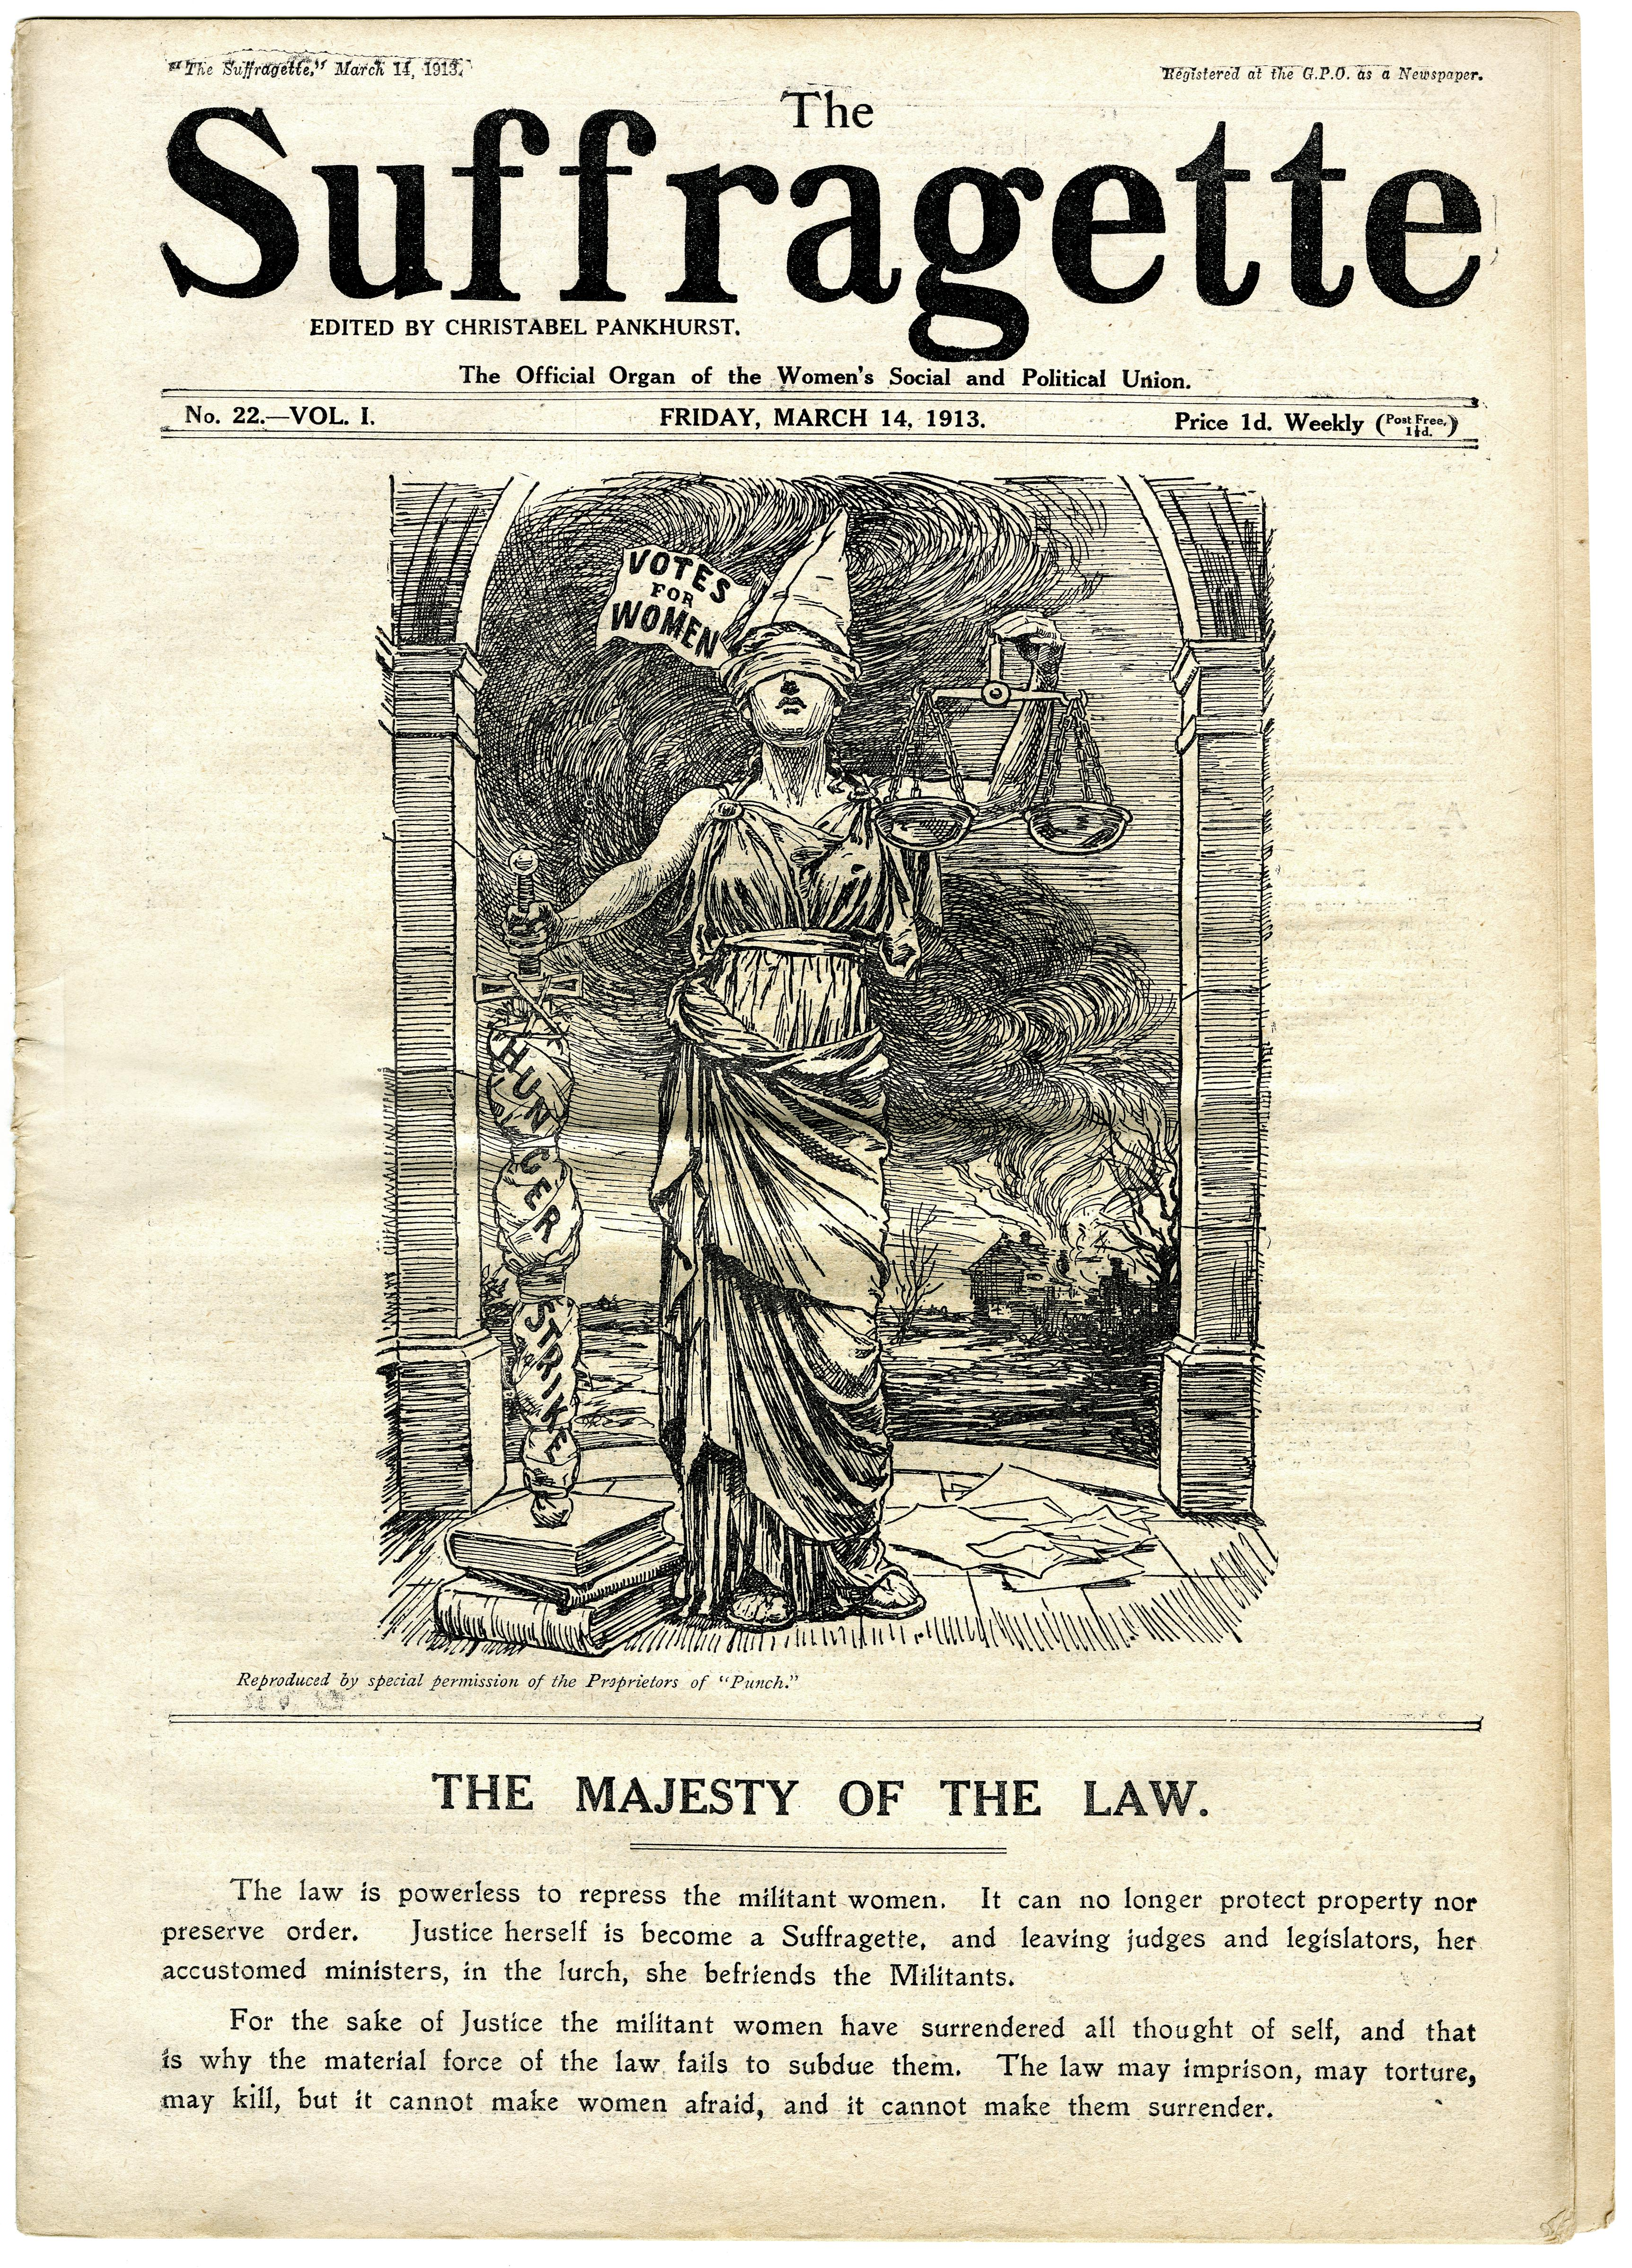 ASSI52-212 Cover of The Suffragette 14 March 1913